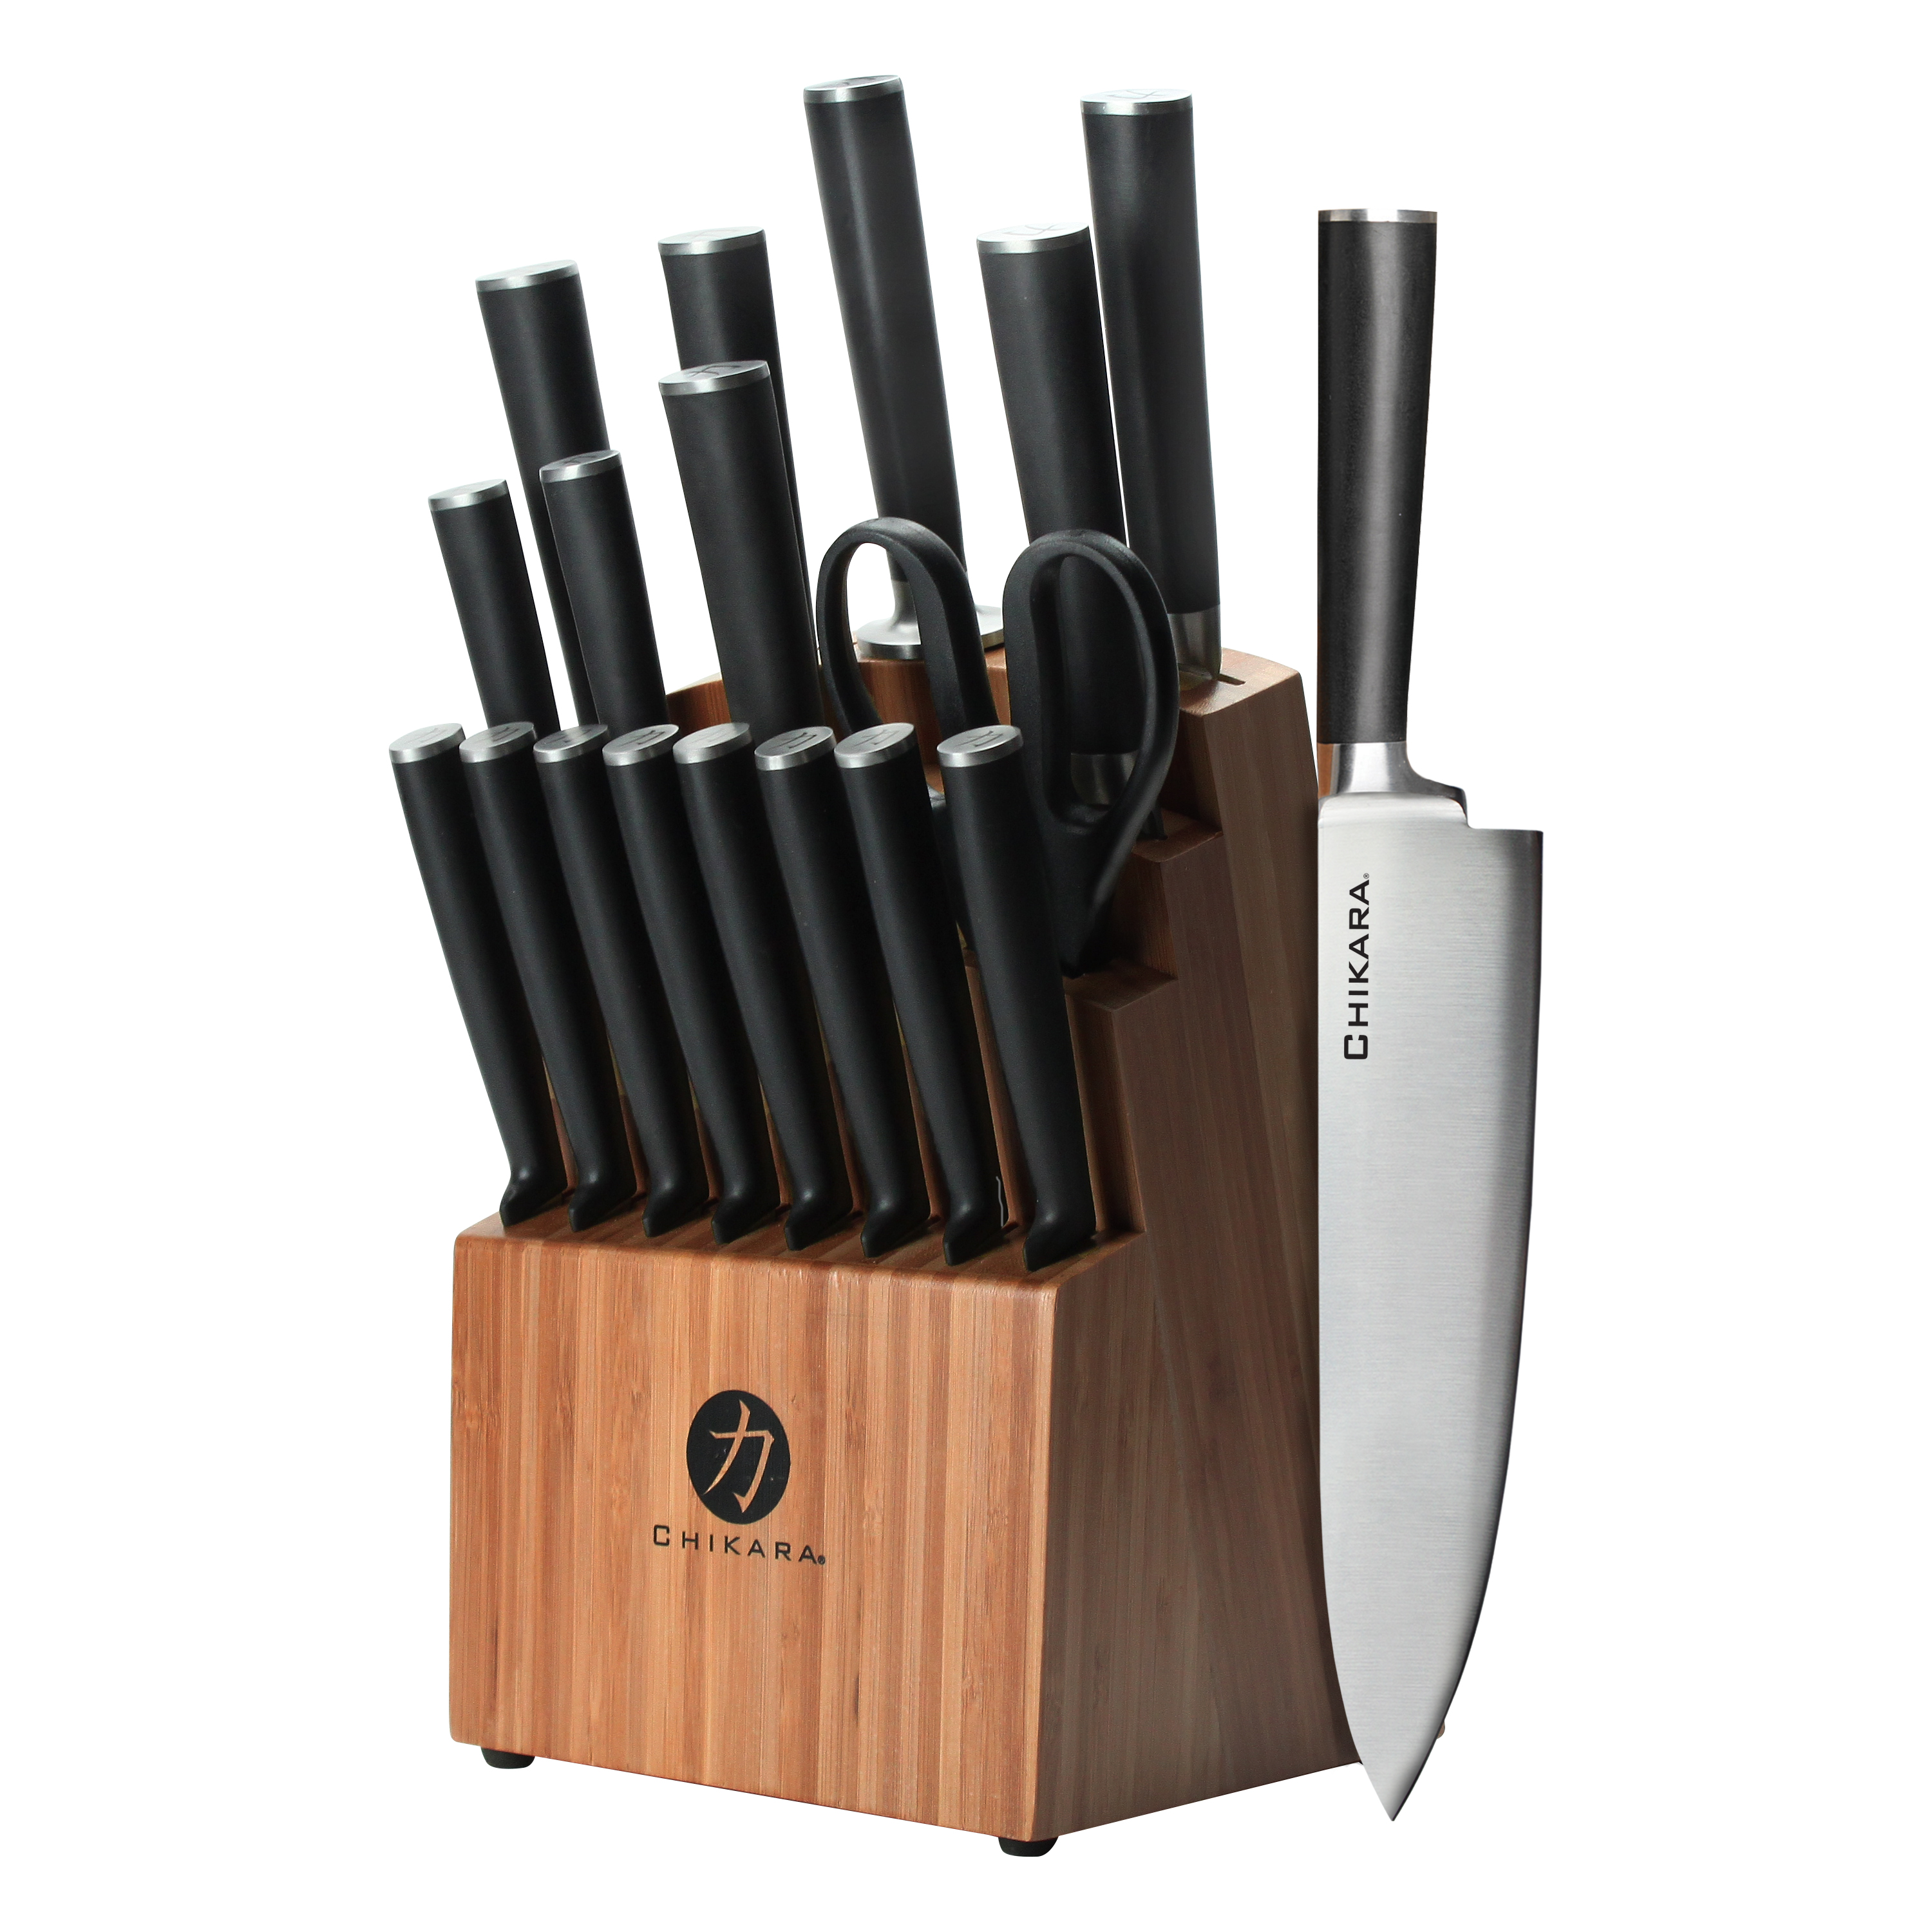 Ginsu Gourmet Chikara Series Forged 19-Piece Japanese Steel Knife Set – Cutlery Set with 420J Stainless Steel Kitchen Knives – Bamboo Finish Block, COK-KB-DS-019-1